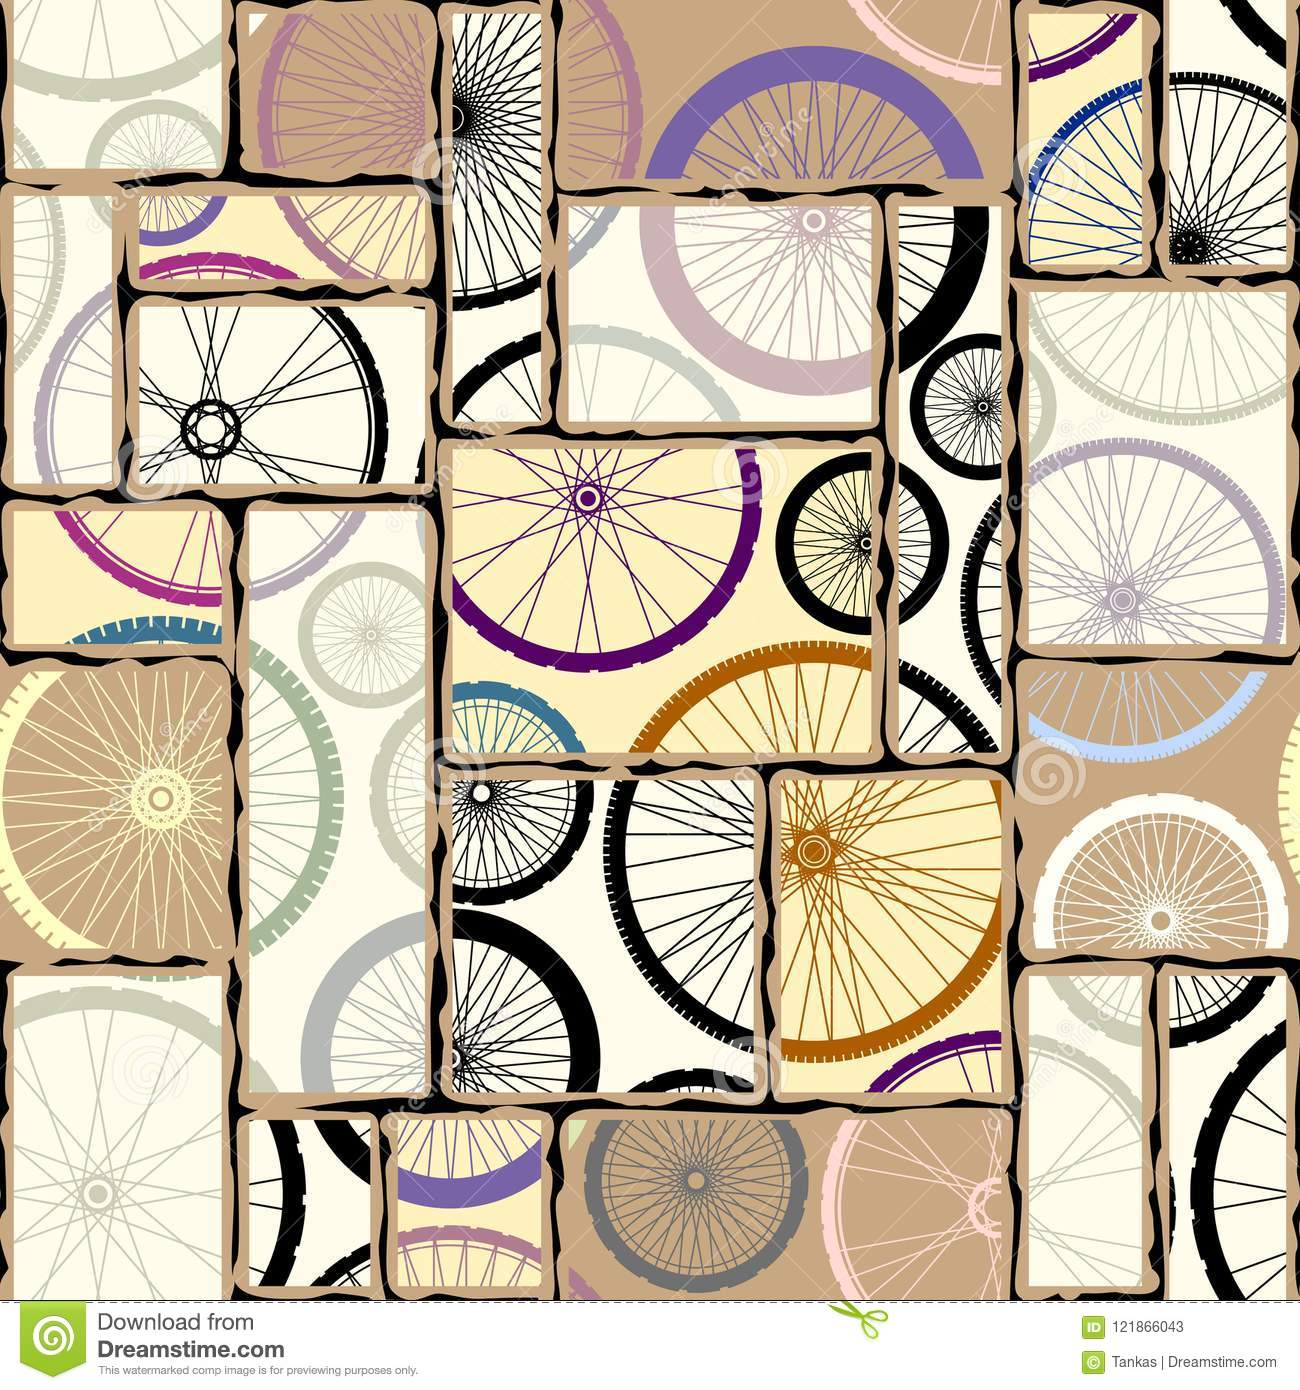 Pattern of bycicles wheels.